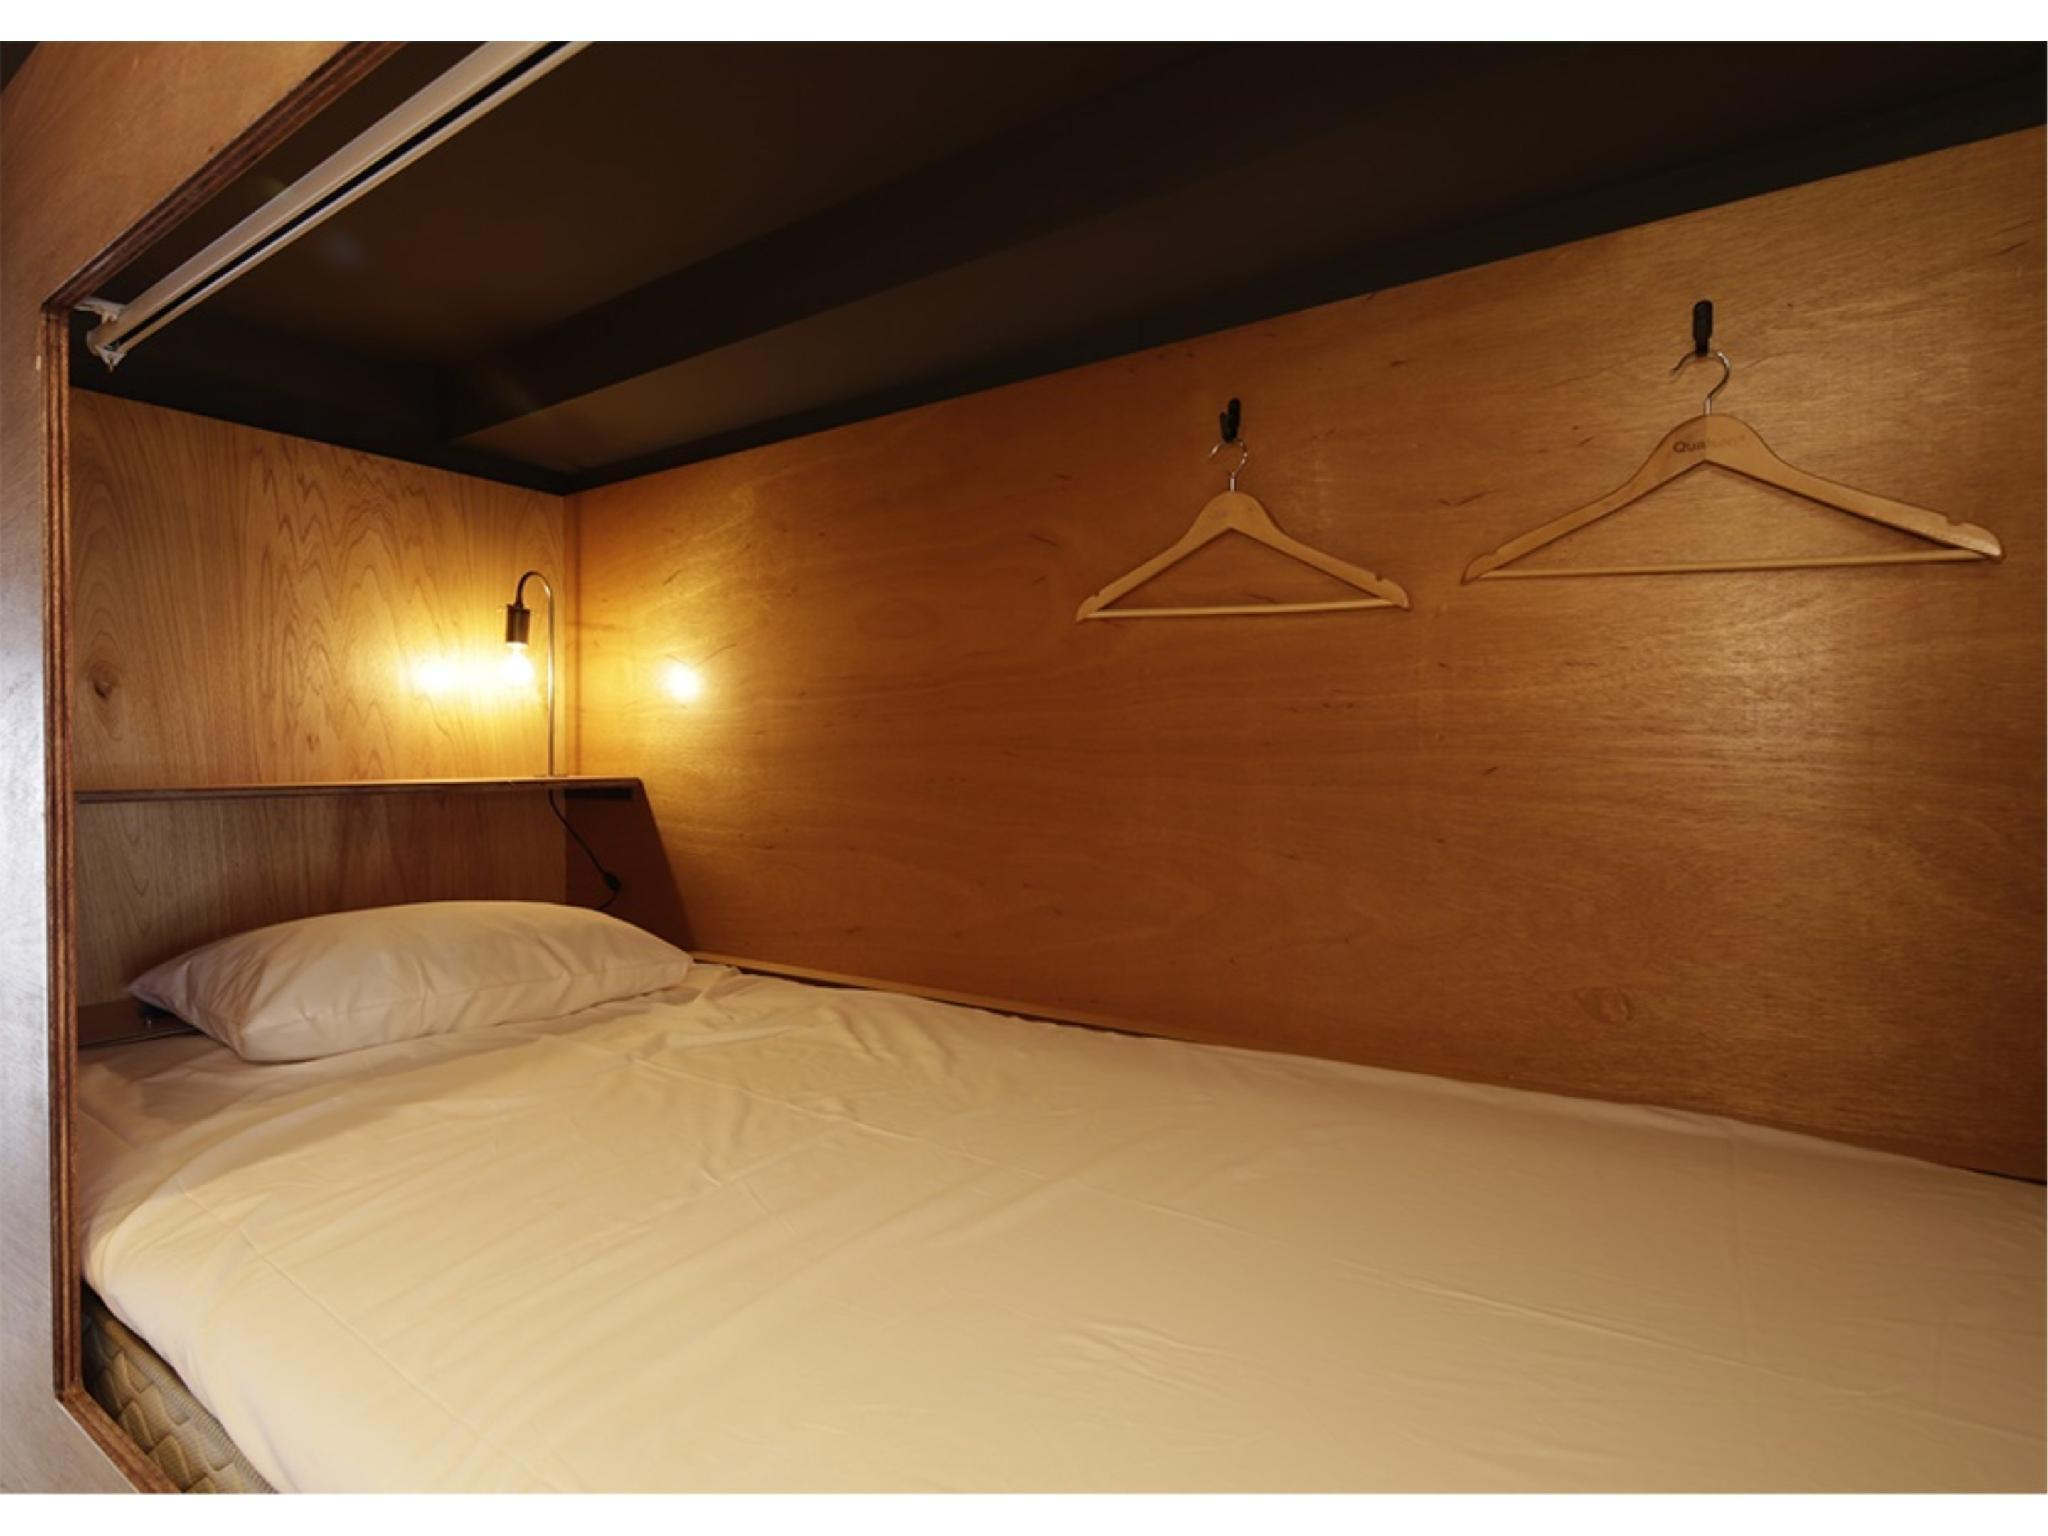 女士合住房(雙層床)※無廁所浴室 (Ladies' Dormitory Room (Bunk Beds) *No bath in room)